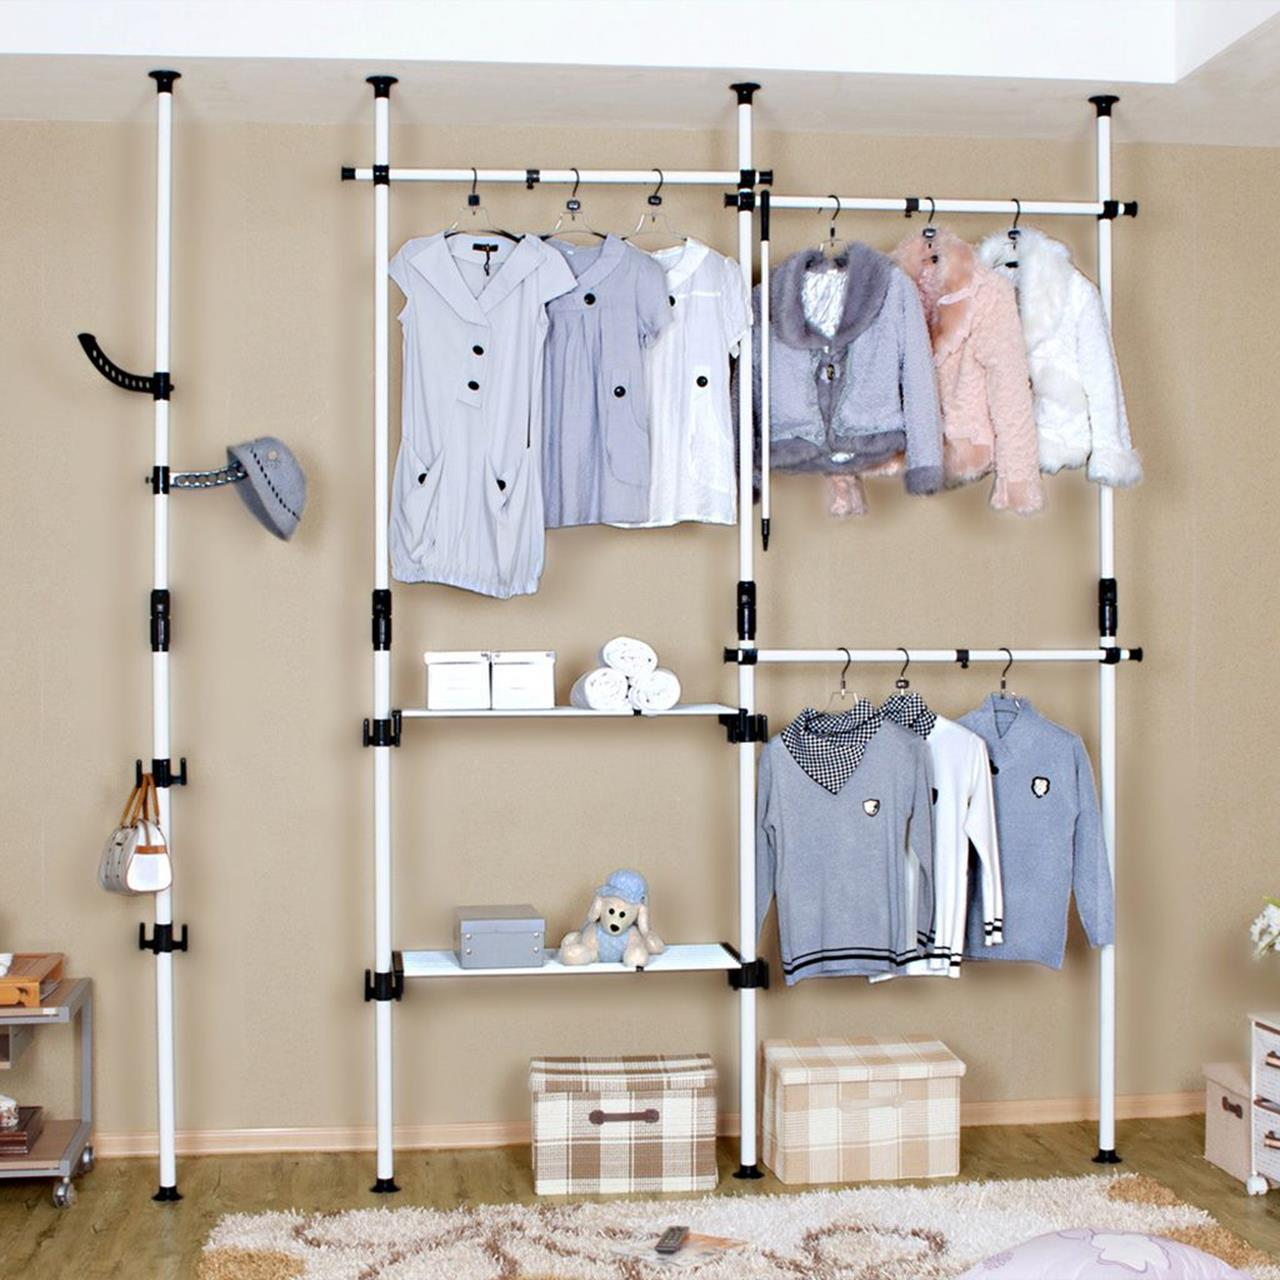 Laundry Room Hanging Rack Ideas 24